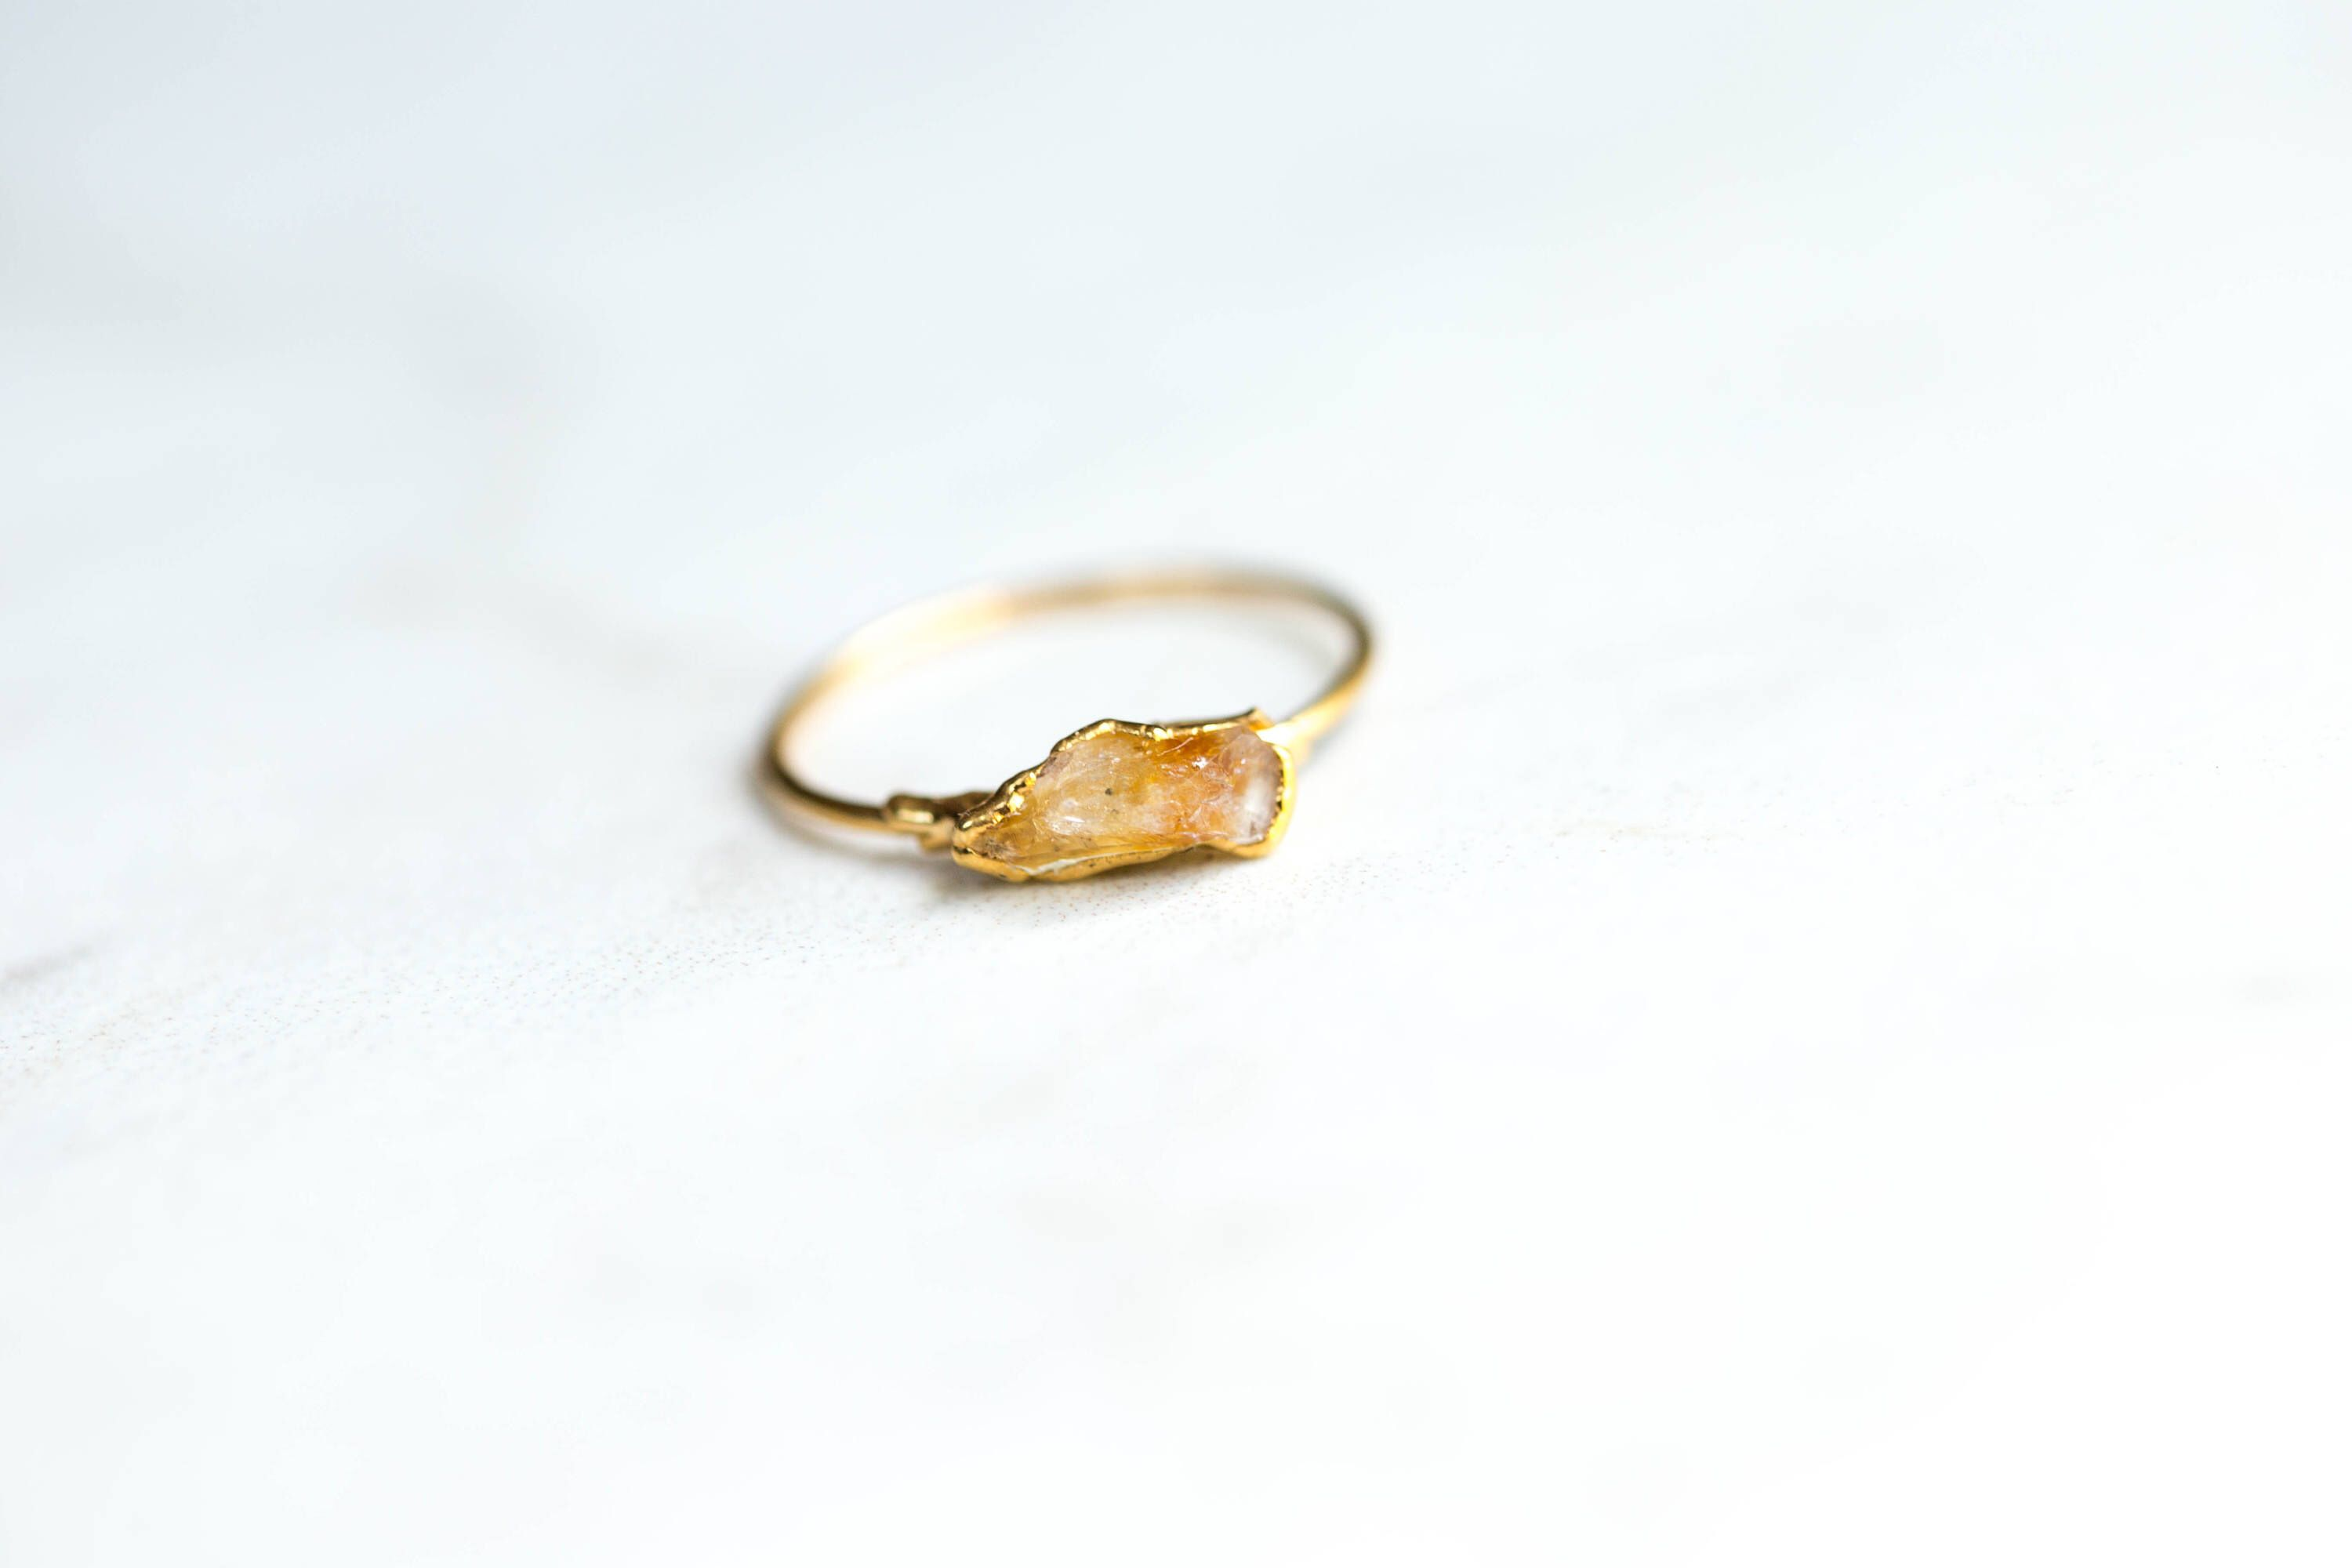 fc594ce6e0f71 Pin by Paige Pierog on RINGS | Gold rings, Citrine ring, Raw ...